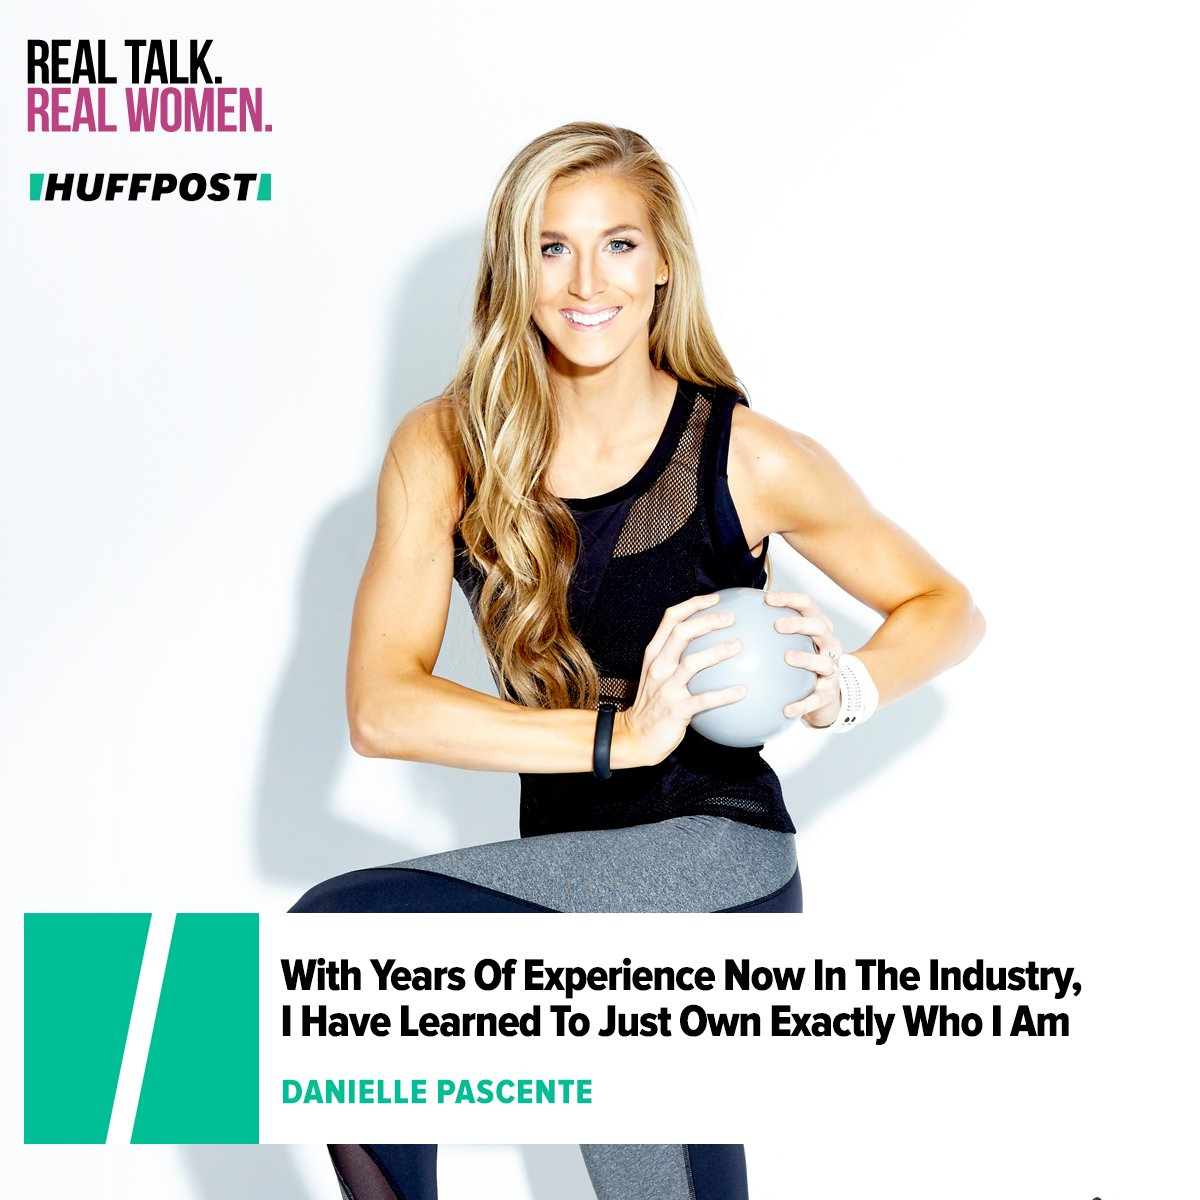 Check out my latest interview with Danielle Pascente on the @HuffPost - https://t.co/Ah48HU68aF https://t.co/R6W71cwvxE